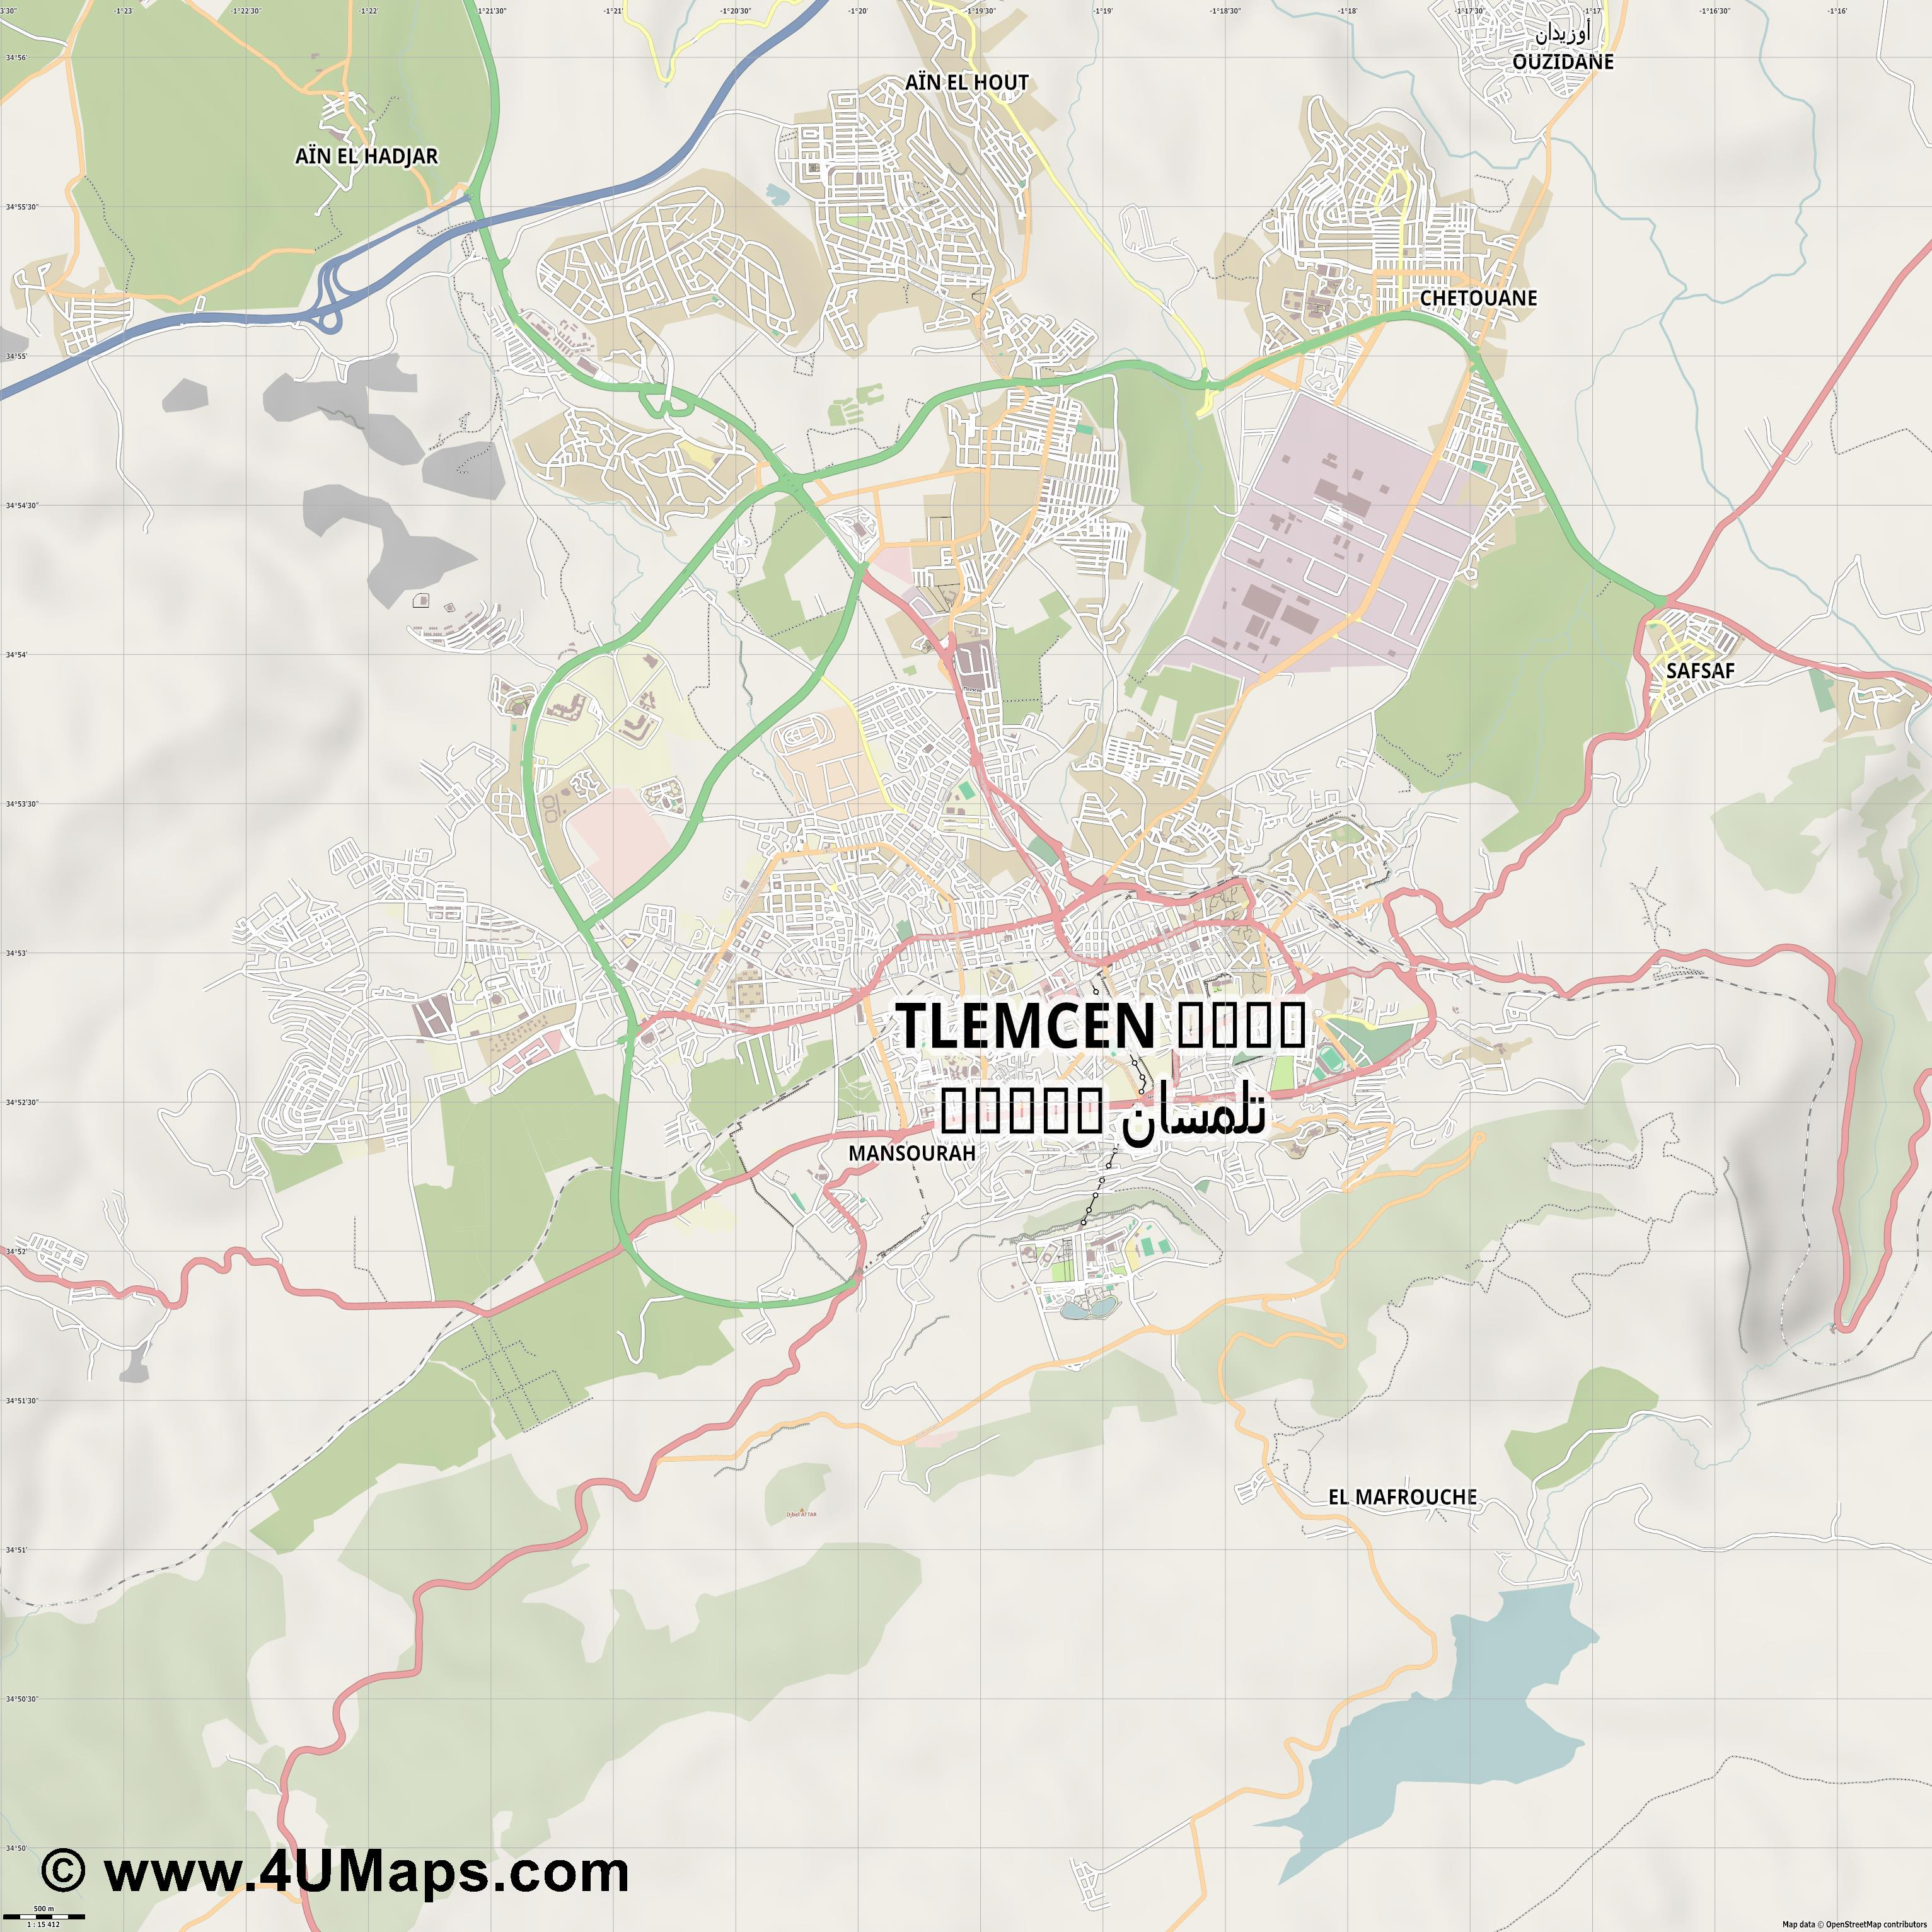 Tlemcen تلمسان  jpg ultra high detail preview vector city map